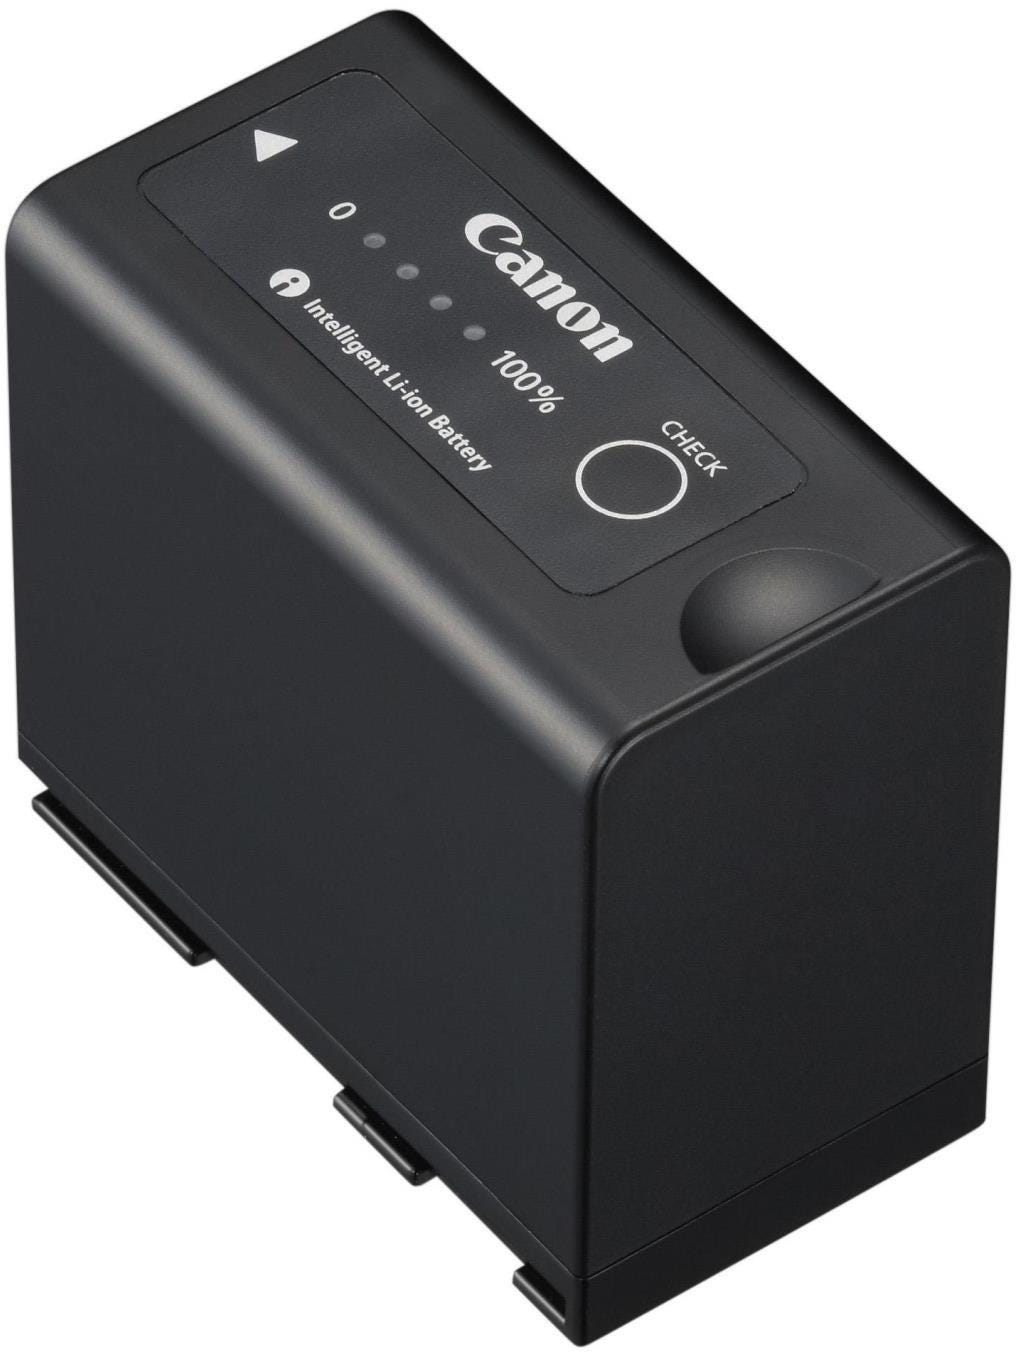 Canon BP-975 Rechargeable Battery Pack for XF305 XF300 XF105 XF100 XF205